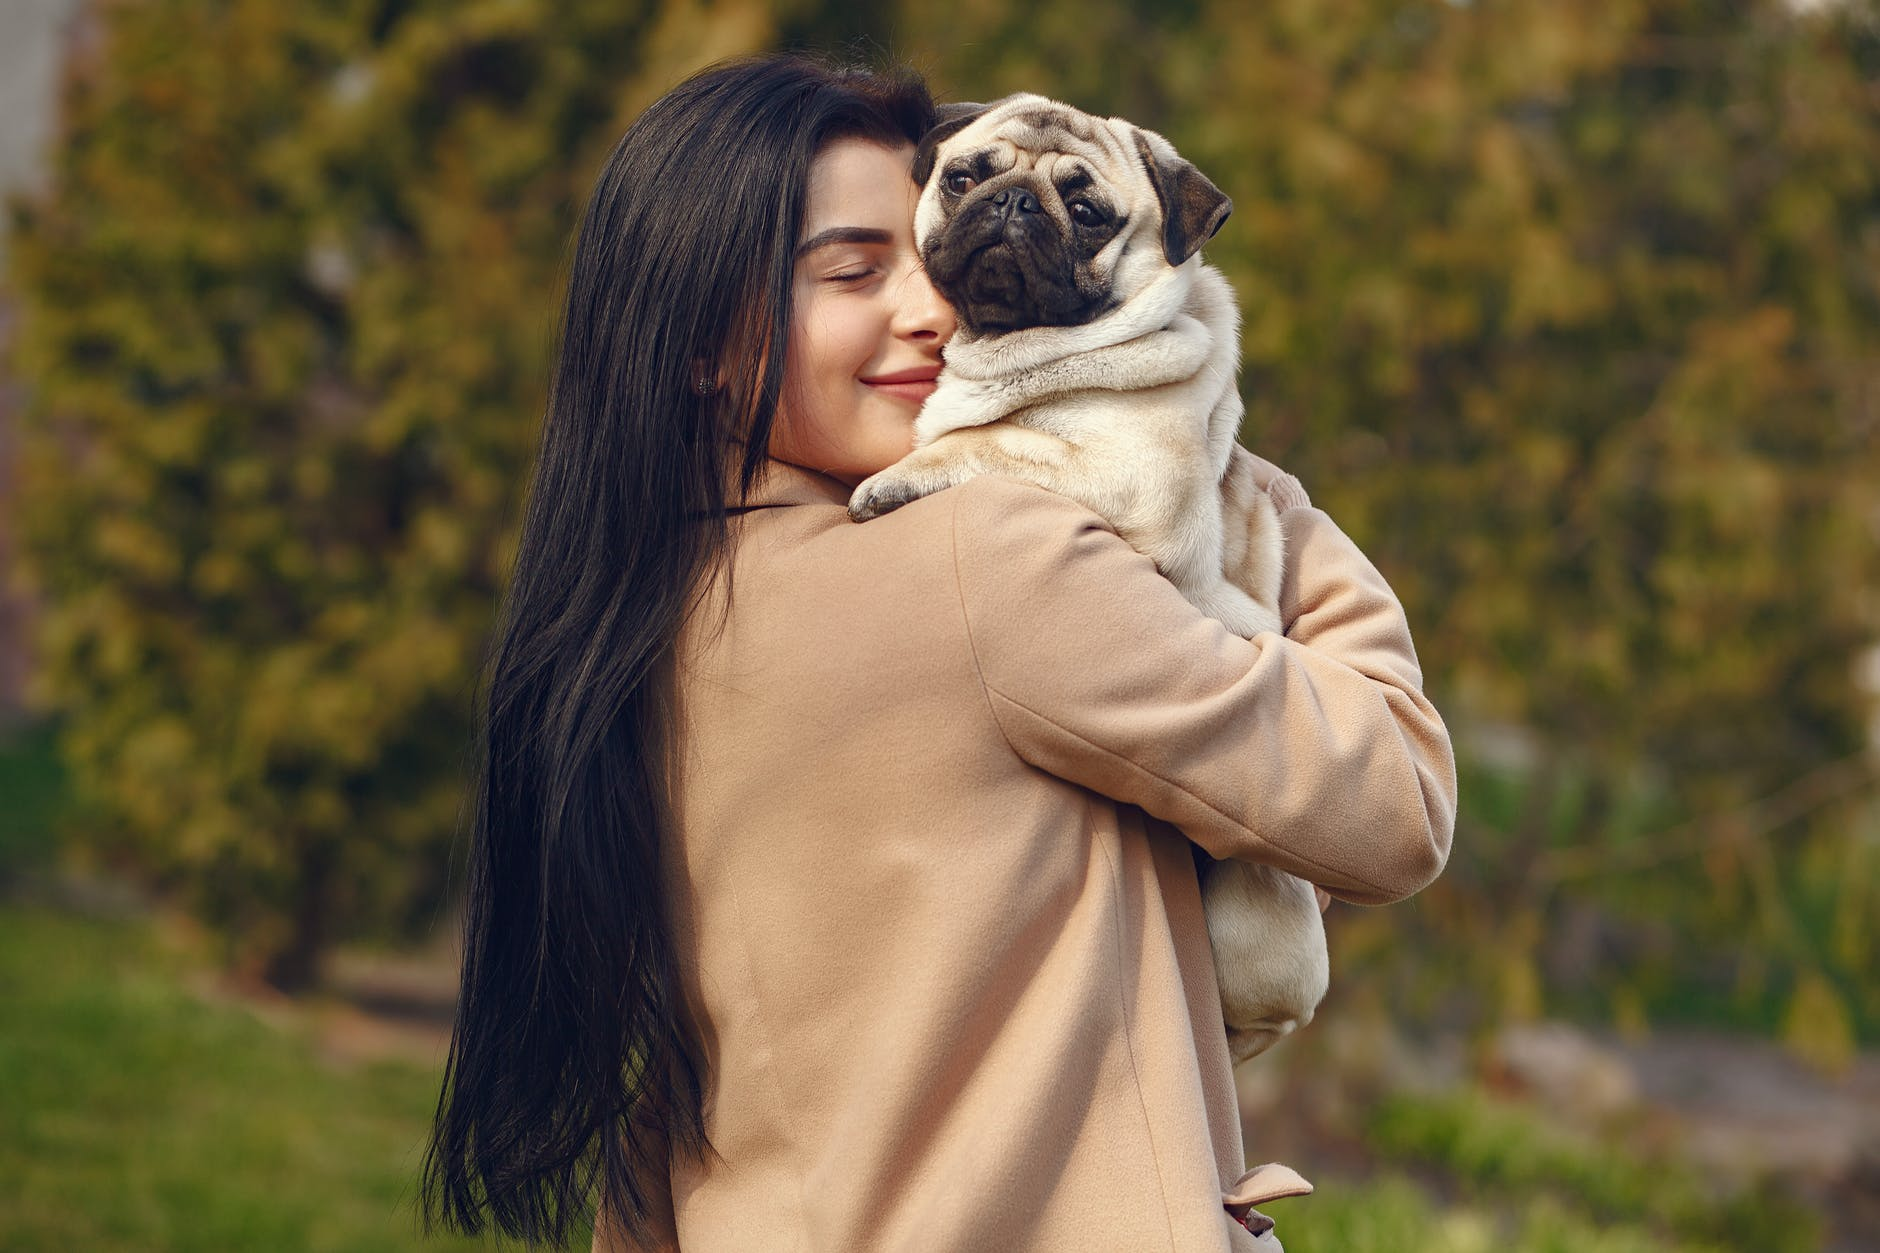 happy woman with pug on hands